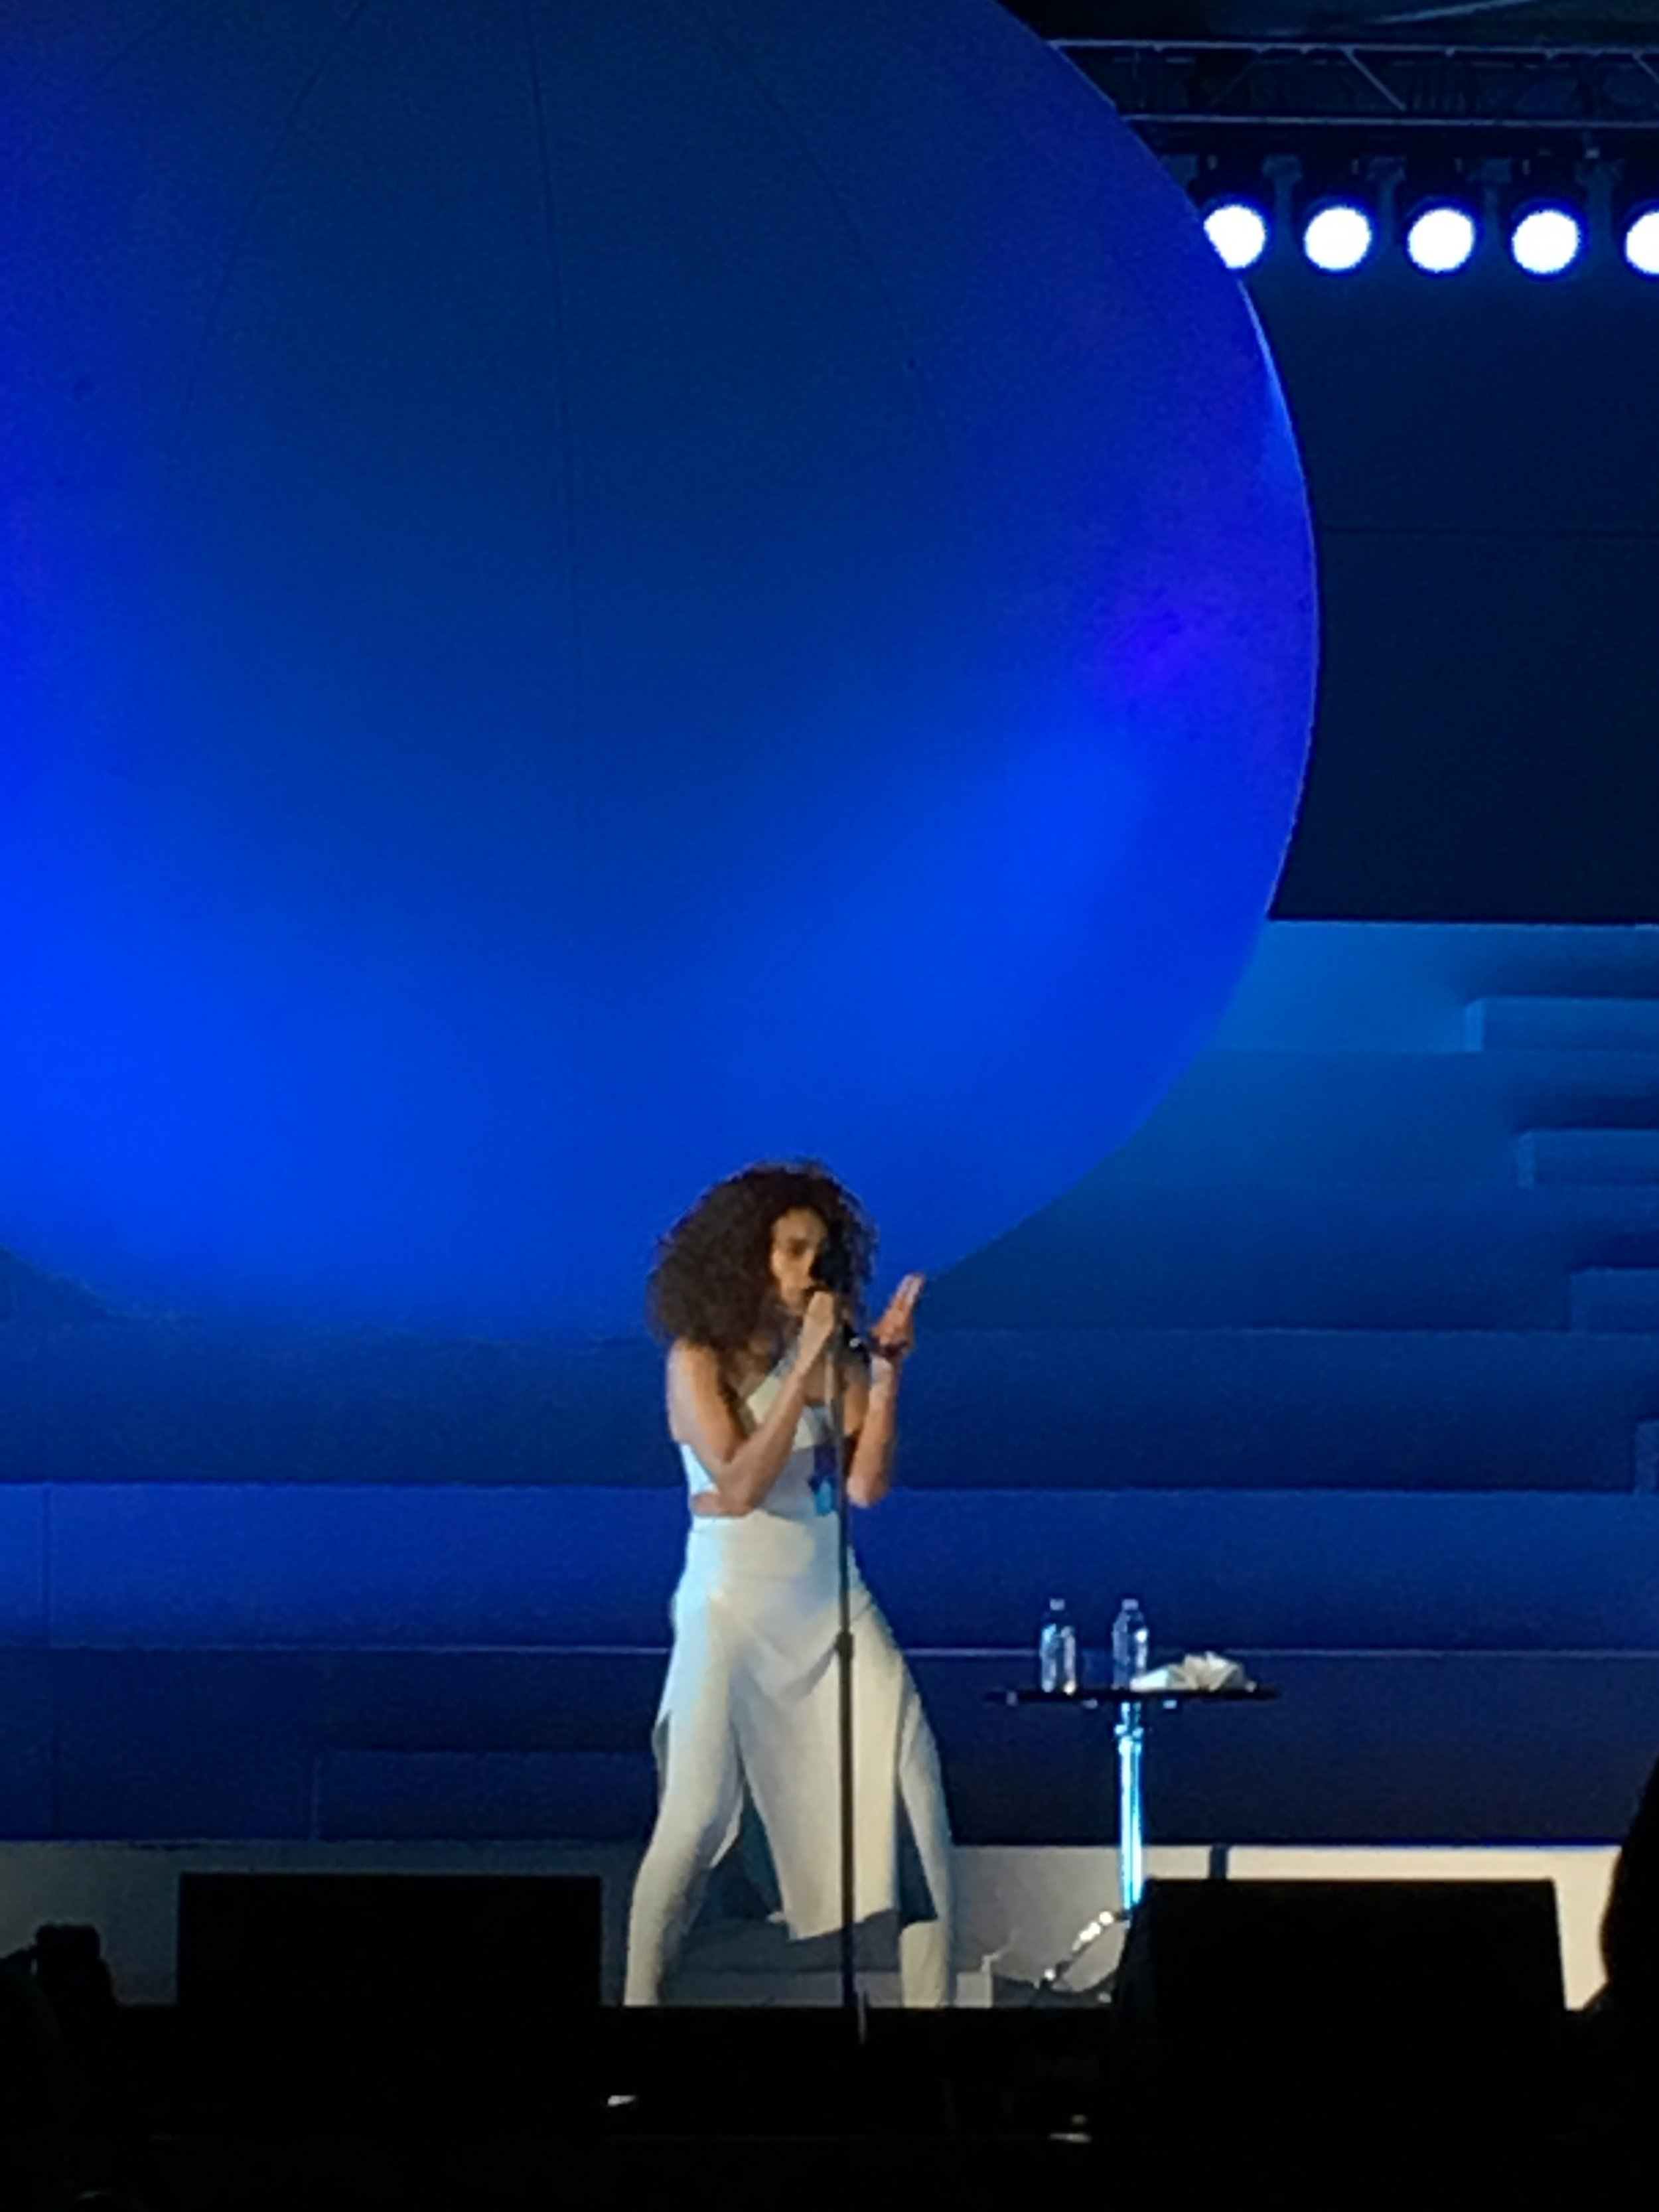 Solange at the Hollywood Bowl